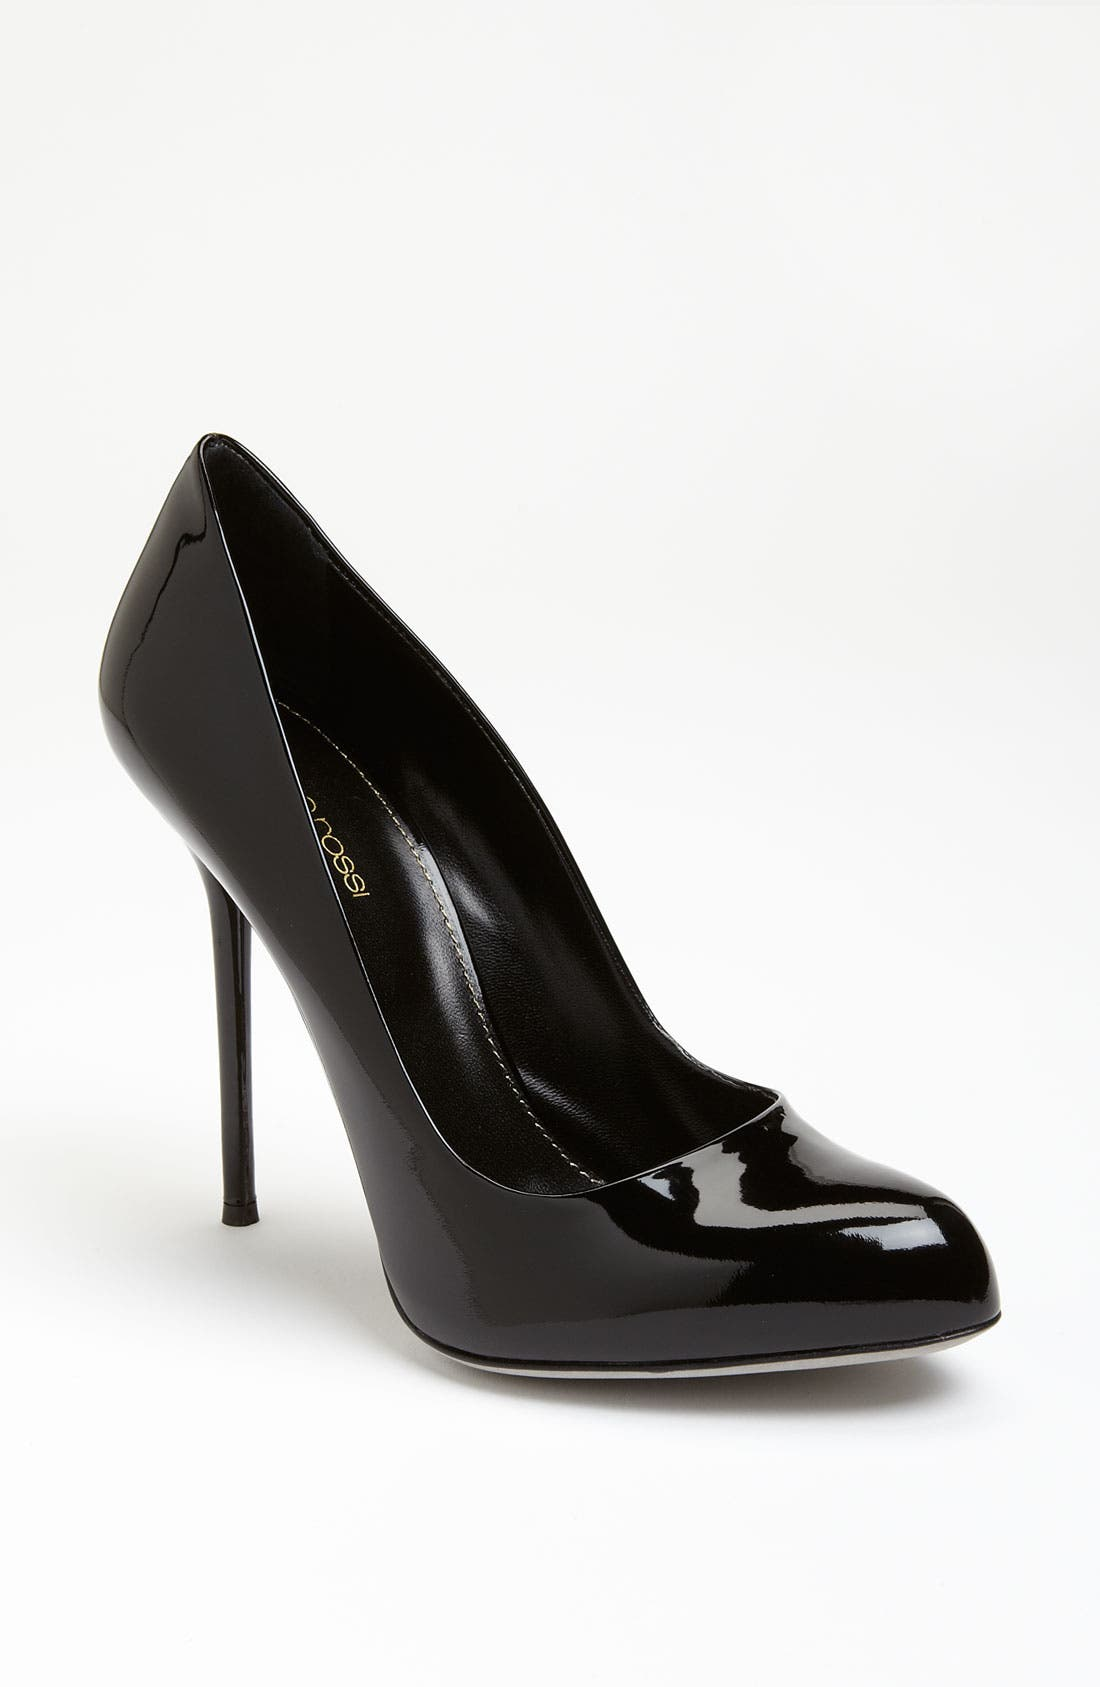 Main Image - Sergio Rossi Single Sole Pump